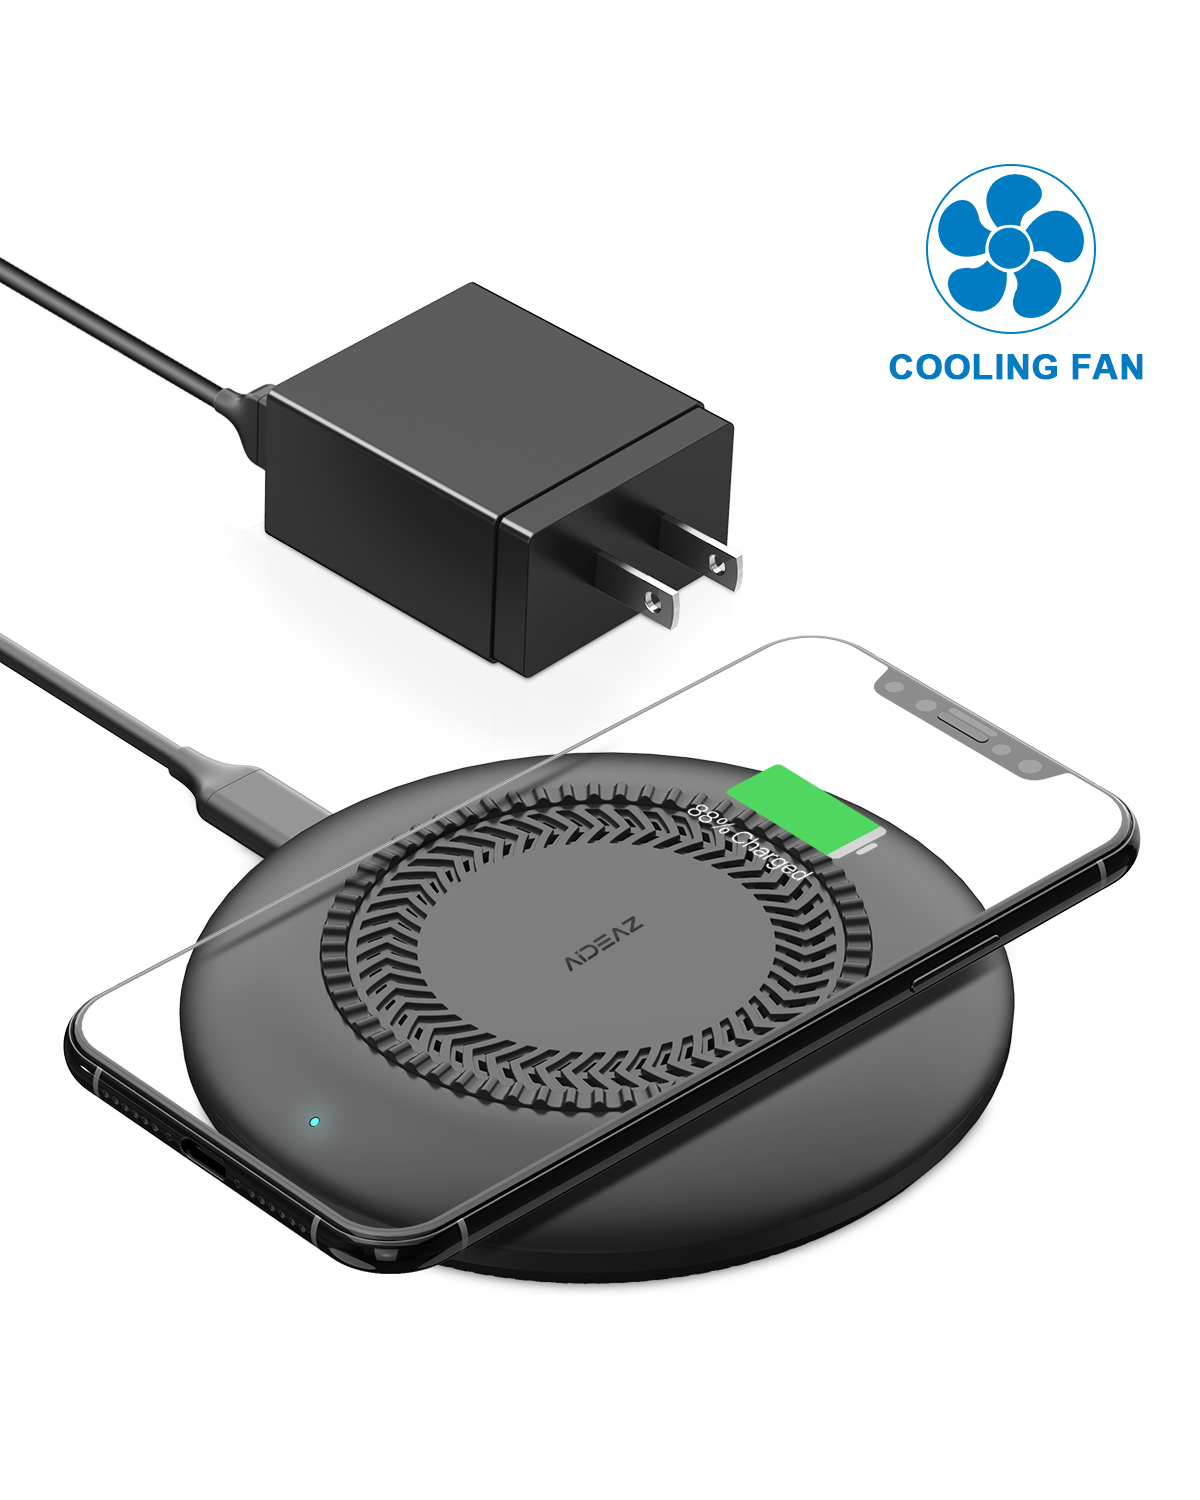 AIDEAZ Wireless Charger Charging Pad, with Light-Sensor & Fan, 7.5W/10W Fast Charger